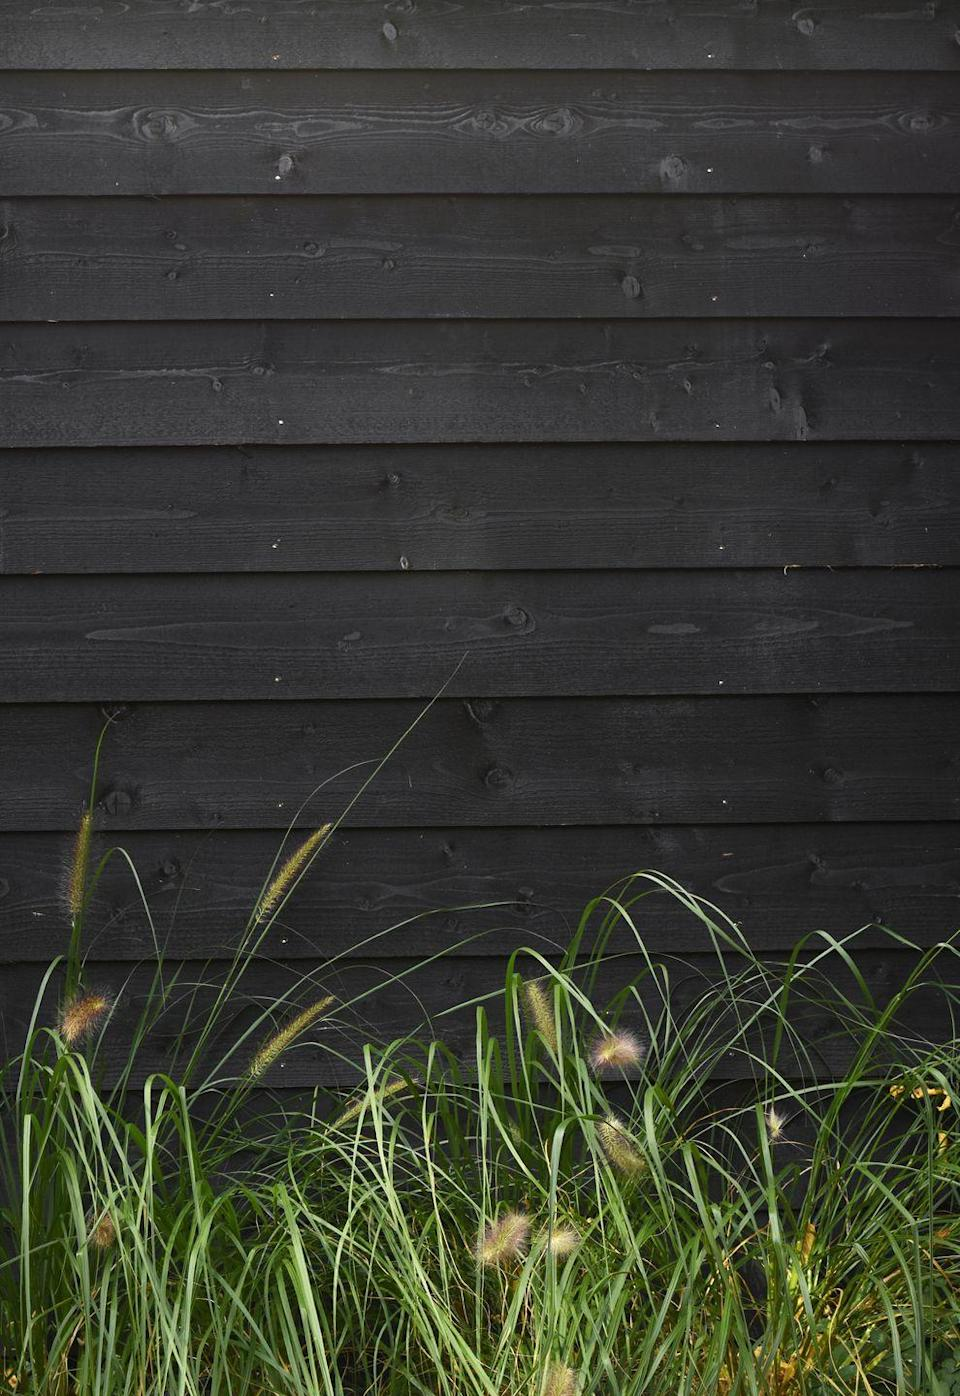 """<p>You'll be surprised by how much a lick of paint can transform an old fence and provide a striking backdrop for greenery and jewel-coloured plants. And the colour you should opt for? Black.</p><p>'The depth this colour gives is magical for garden designers; paint a fence black and it disappears, a shed becomes less of an eyesore and that old bench suddenly becomes a chic focal point,' says Chelsea Flower Show garden designer Andrew Duff.</p><p>This is a great garden idea if you want instant impact. Don't forget, you can give your plant pots a new lease of life by painting them too. </p><p>• Head to <a href=""""https://go.redirectingat.com?id=127X1599956&url=https%3A%2F%2Fwww.homebase.co.uk%2F&sref=https%3A%2F%2Fwww.housebeautiful.com%2Fuk%2Fgarden%2Fdesigns%2Fg28%2Fgarden-ideas-on-a-budget%2F"""" rel=""""nofollow noopener"""" target=""""_blank"""" data-ylk=""""slk:Homebase"""" class=""""link rapid-noclick-resp"""">Homebase</a>, <a href=""""https://go.redirectingat.com?id=127X1599956&url=https%3A%2F%2Fwww.wickes.co.uk%2FProducts%2FGardens%2FExterior-Paint%2BWood-Treatment%2FGarden-Furniture-Treatment%2Fc%2F1015000&sref=https%3A%2F%2Fwww.housebeautiful.com%2Fuk%2Fgarden%2Fdesigns%2Fg28%2Fgarden-ideas-on-a-budget%2F"""" rel=""""nofollow noopener"""" target=""""_blank"""" data-ylk=""""slk:Wickes"""" class=""""link rapid-noclick-resp"""">Wickes</a> or <a href=""""https://go.redirectingat.com?id=127X1599956&url=https%3A%2F%2Fwww.diy.com%2Fdepartments%2Fpainting-decorating%2Fpaint-wood-treatments%2Fexterior-woodcare%2Fshed-fence-paint-treatments%2FDIY1624152.cat&sref=https%3A%2F%2Fwww.housebeautiful.com%2Fuk%2Fgarden%2Fdesigns%2Fg28%2Fgarden-ideas-on-a-budget%2F"""" rel=""""nofollow noopener"""" target=""""_blank"""" data-ylk=""""slk:B&Q"""" class=""""link rapid-noclick-resp"""">B&Q</a> for garden paint.</p><p><strong>READ MORE: <a href=""""https://www.housebeautiful.com/uk/garden/a28060627/black-garden-paint/"""" rel=""""nofollow noopener"""" target=""""_blank"""" data-ylk=""""slk:Why black is this summer's must-have garden paint colour"""" class=""""link rapid-noclick-resp"""">Why black"""